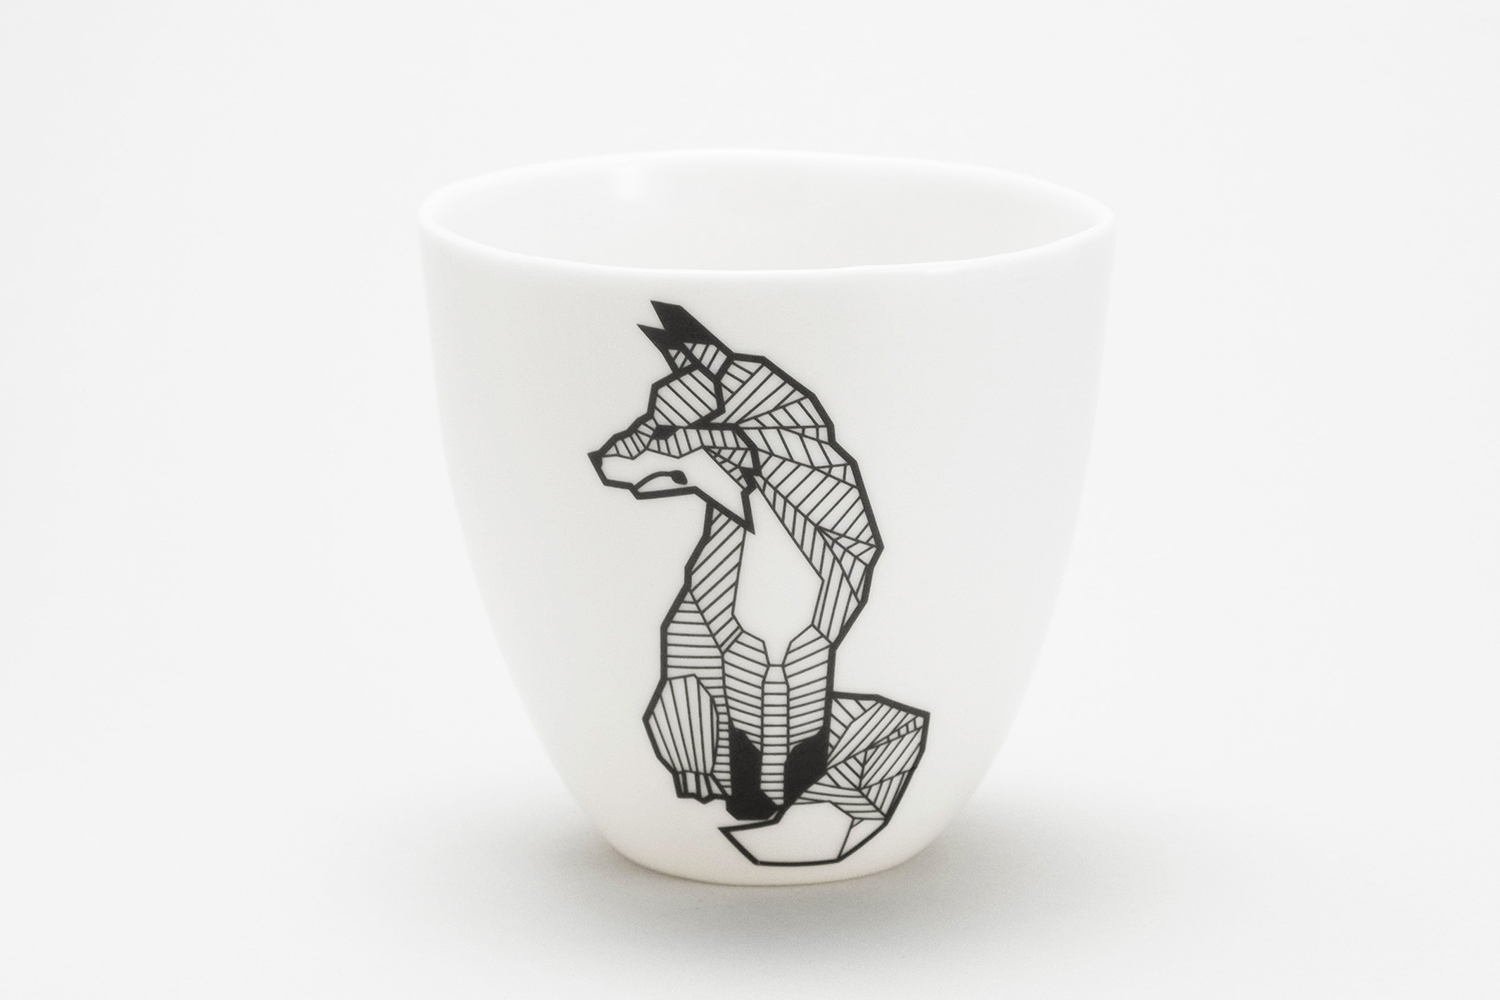 fox tattoo mug porcelain handmade Berlin style best tattoo artist handmade Germany Antikapratika manufacture .jpg